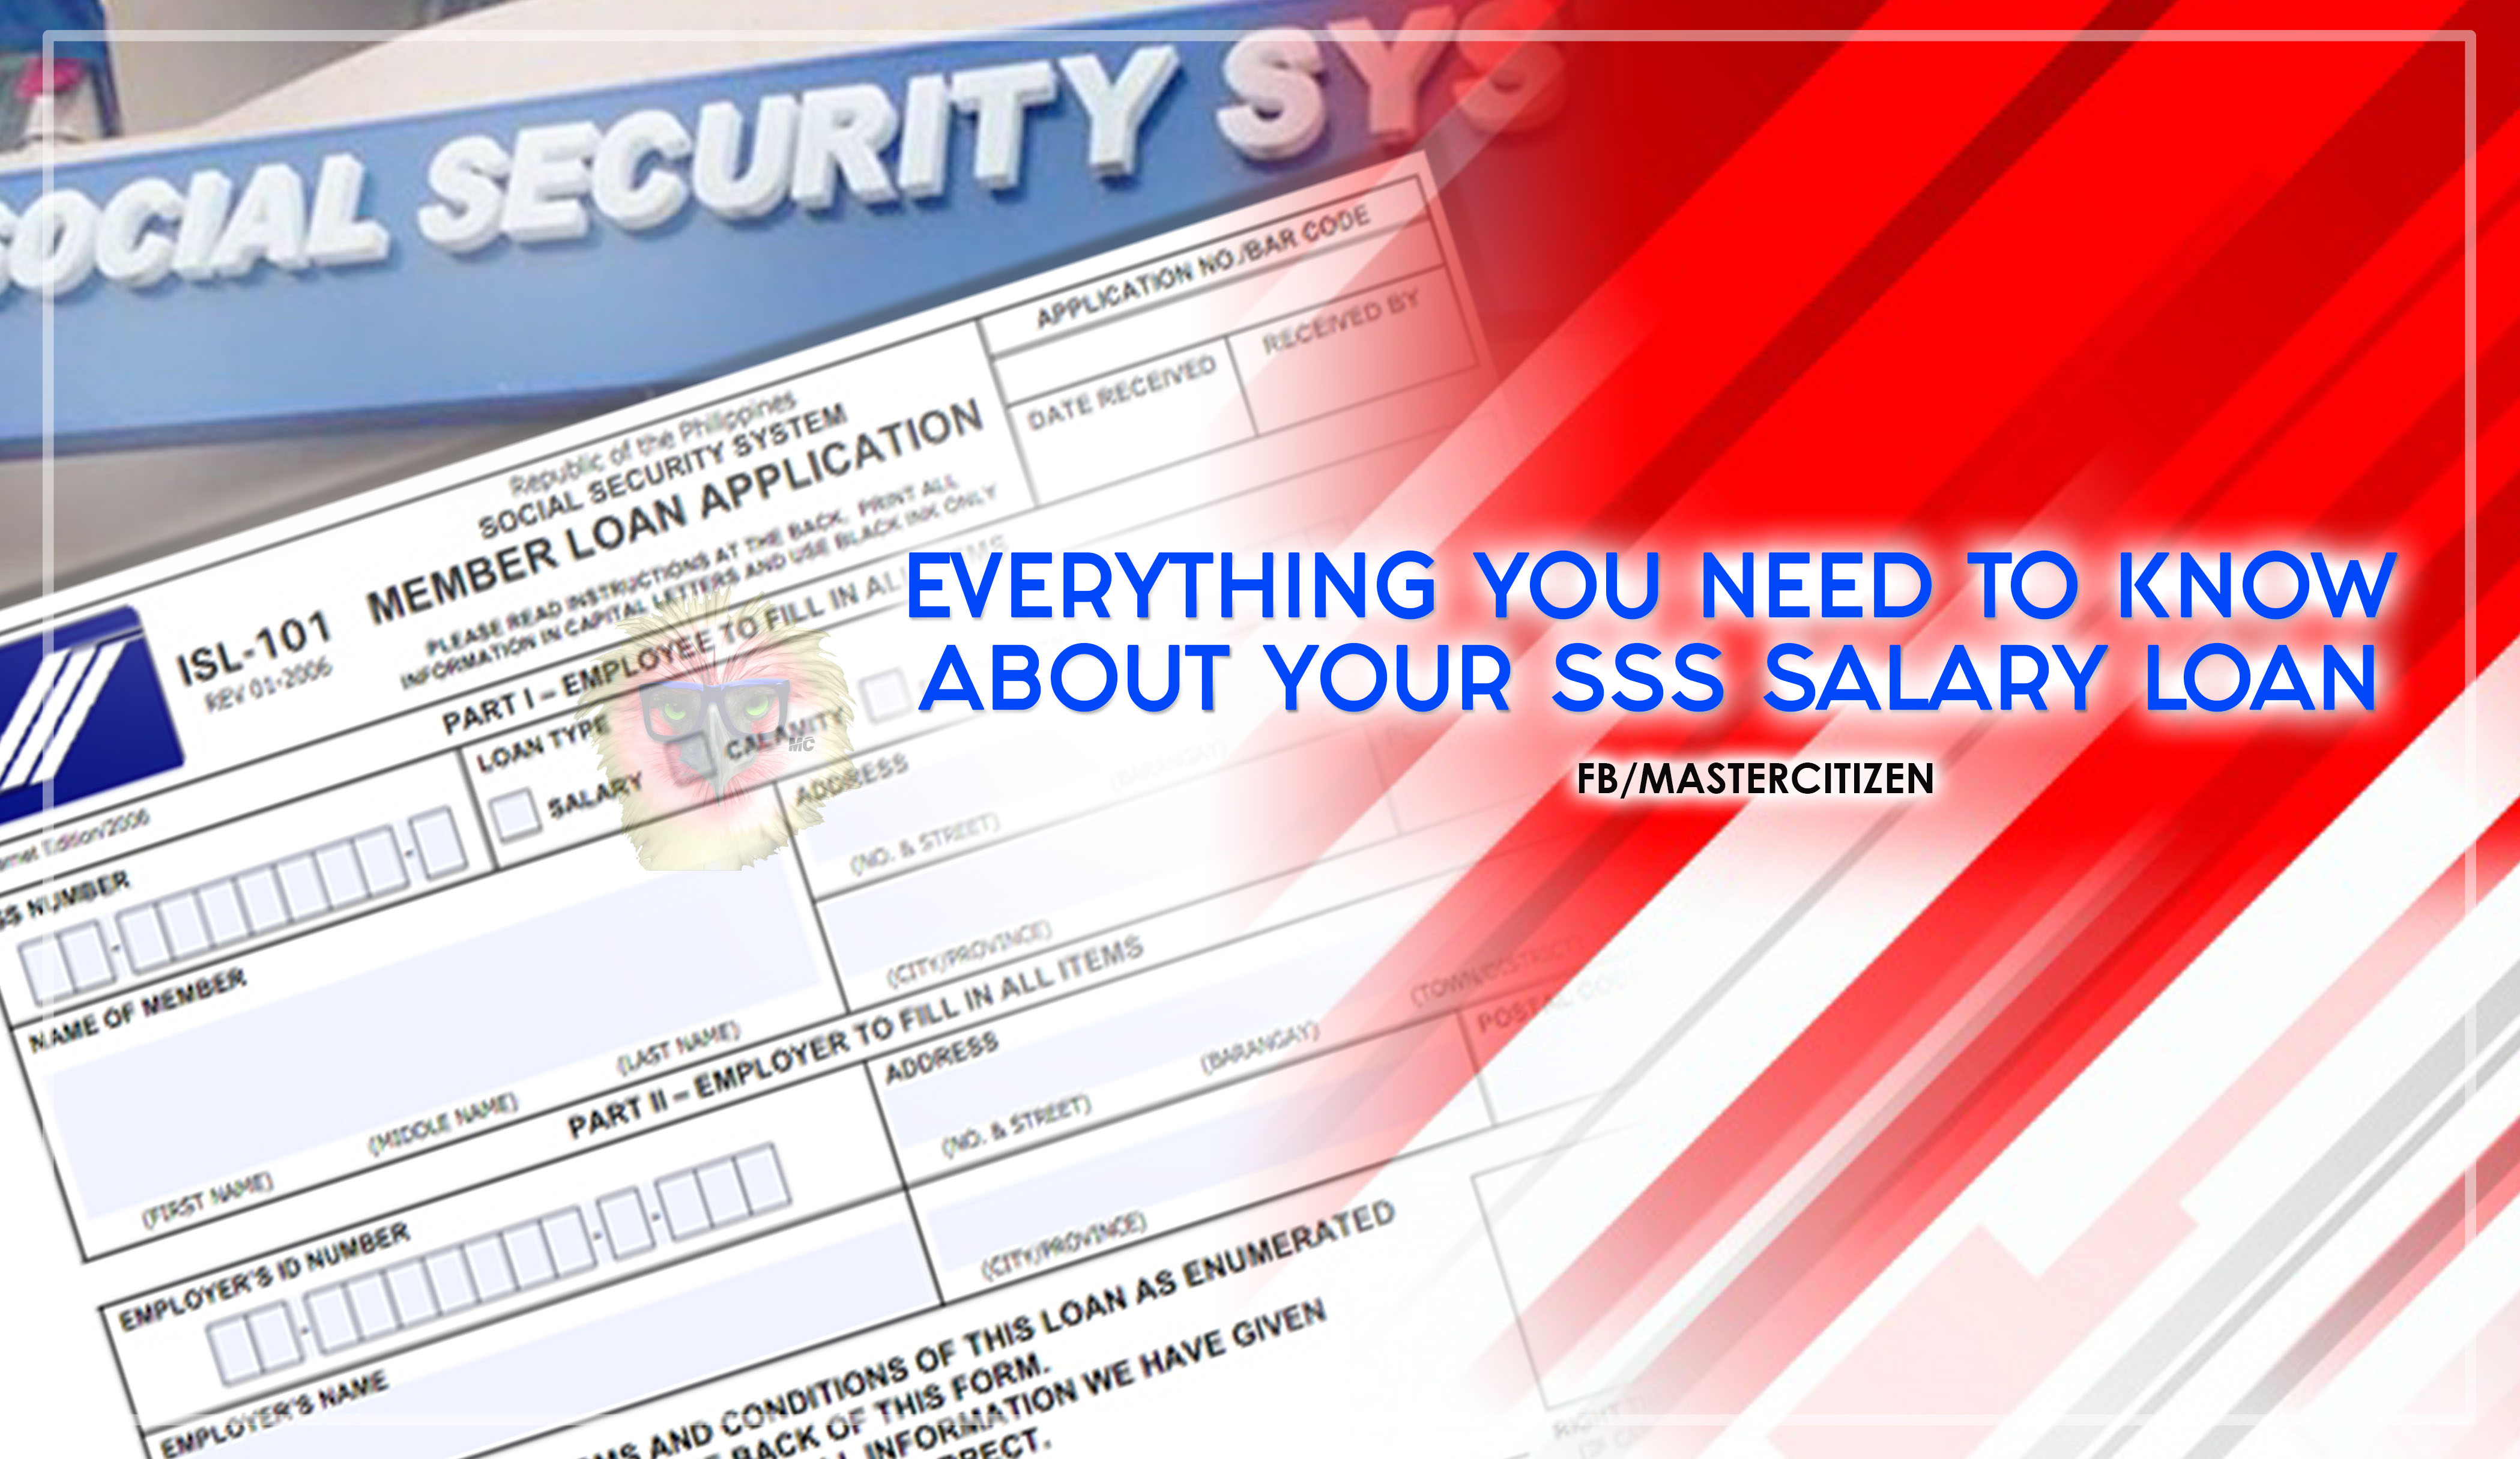 Everything You Need to Know About Your SSS Salary Loan | MasterCitizen's  Blog